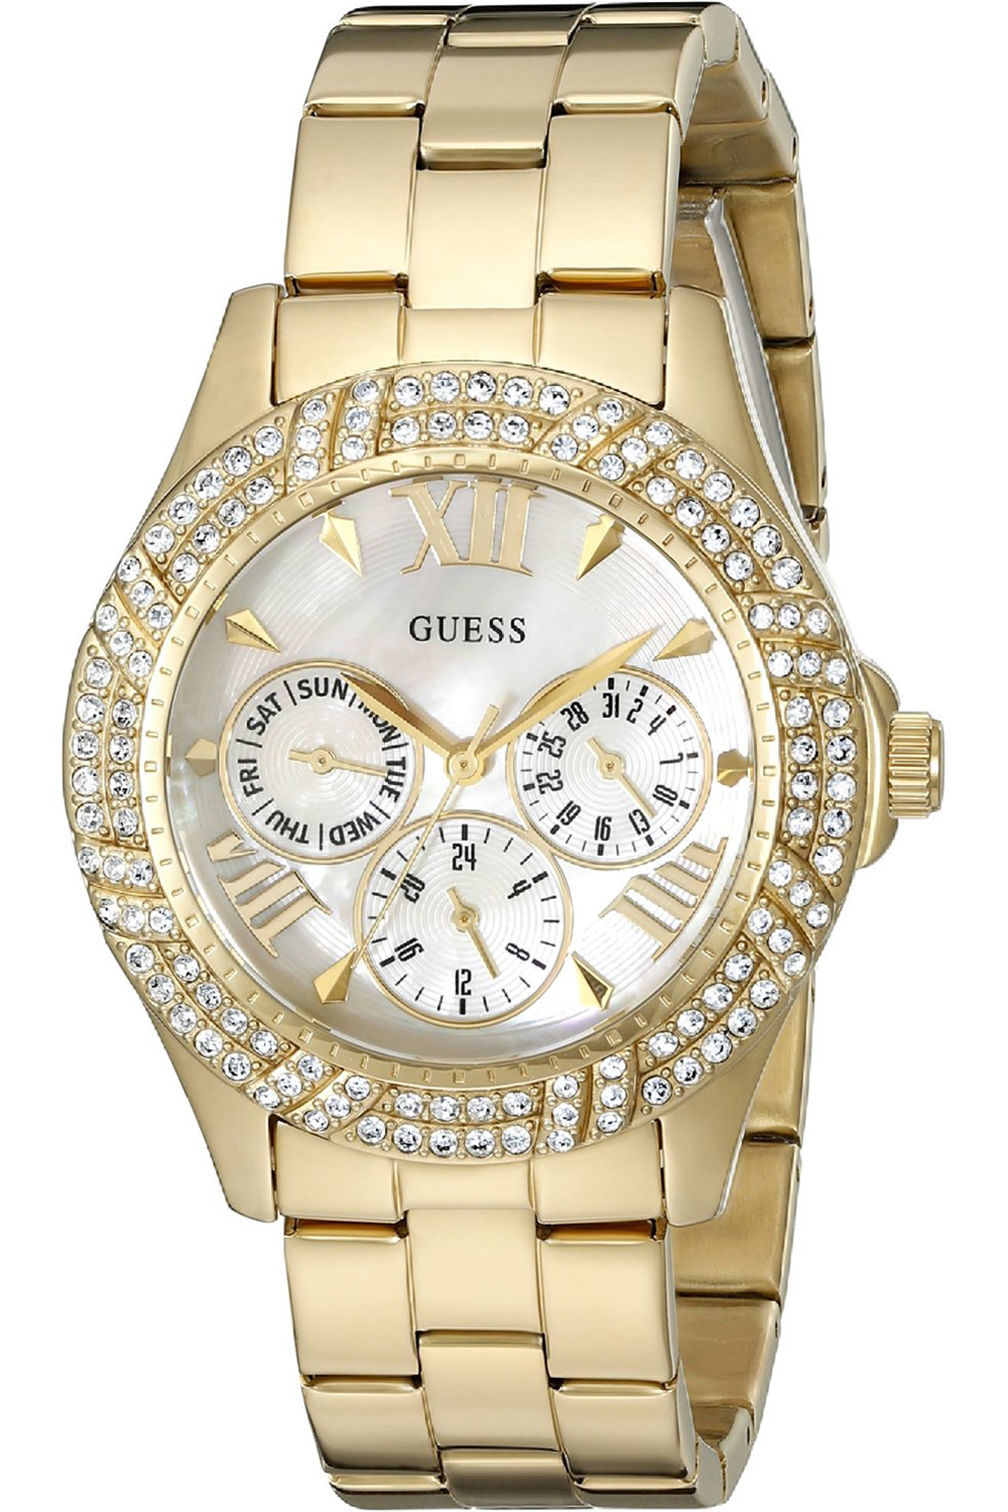 W0632L2,Ladies Dress,multi-function,Stainless Steel,gold-Tone,Crystal Accented Bezel,WR